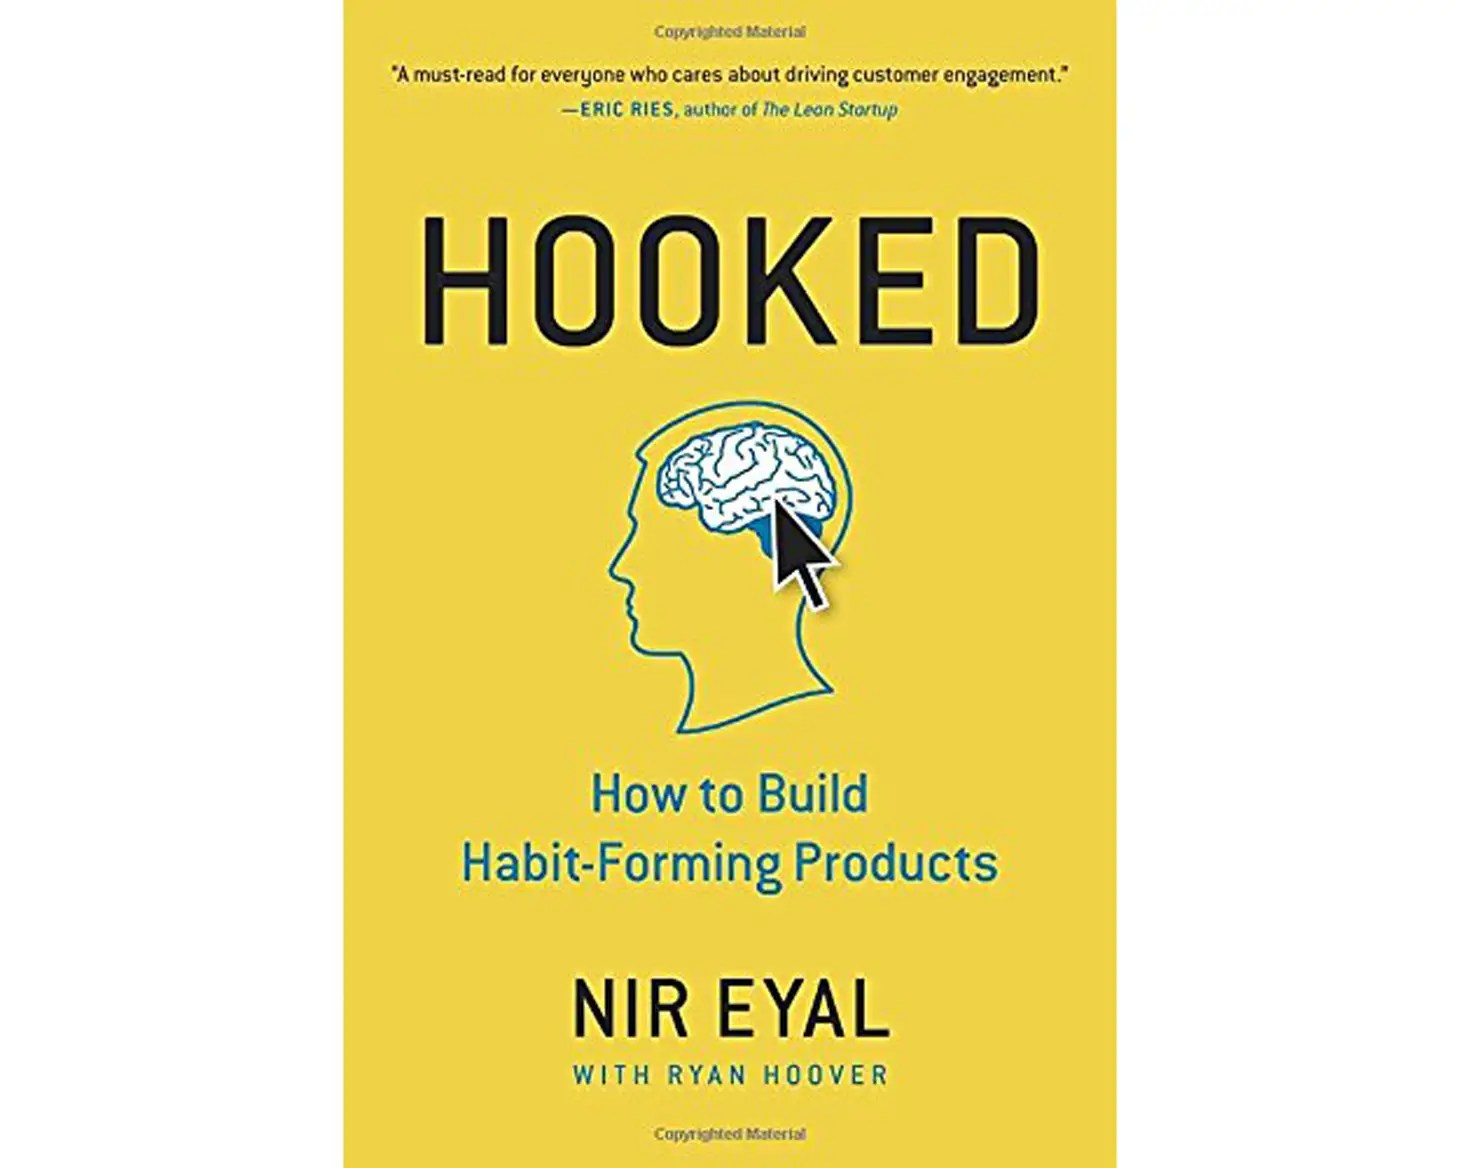 """Hooked: How to Build Habit-Forming Products"" by Nir Eyal"